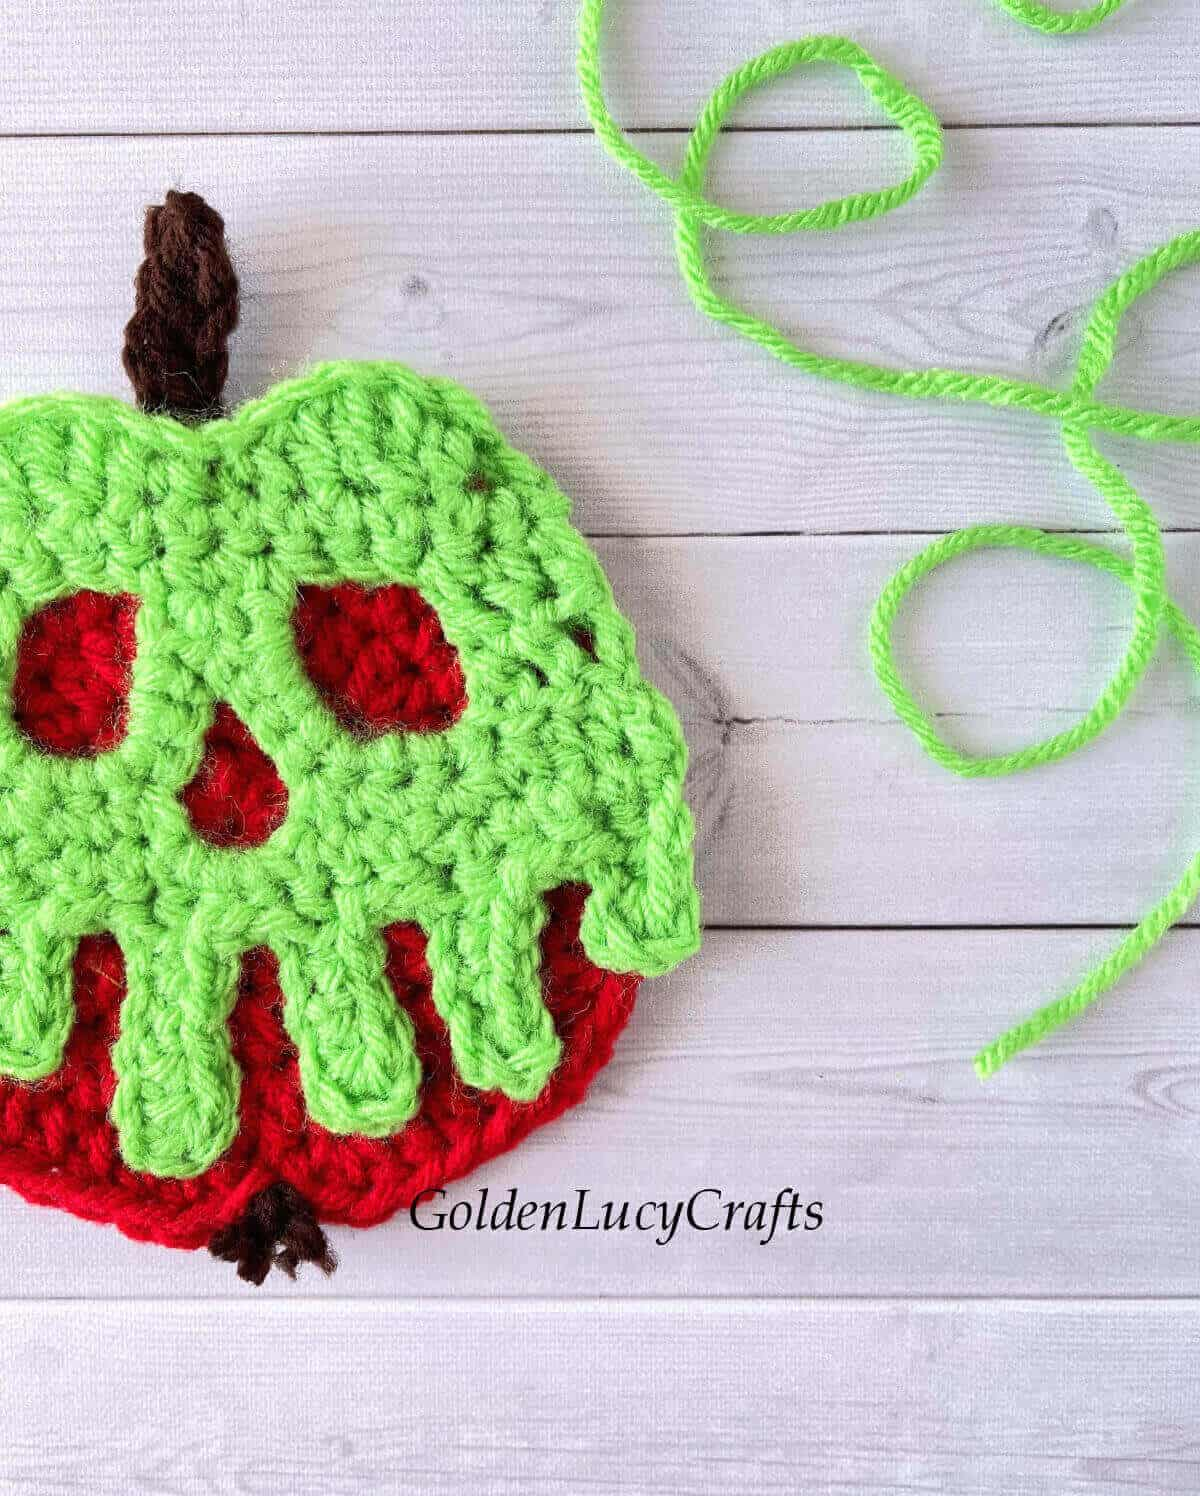 Crocheted poisoned apple close up.